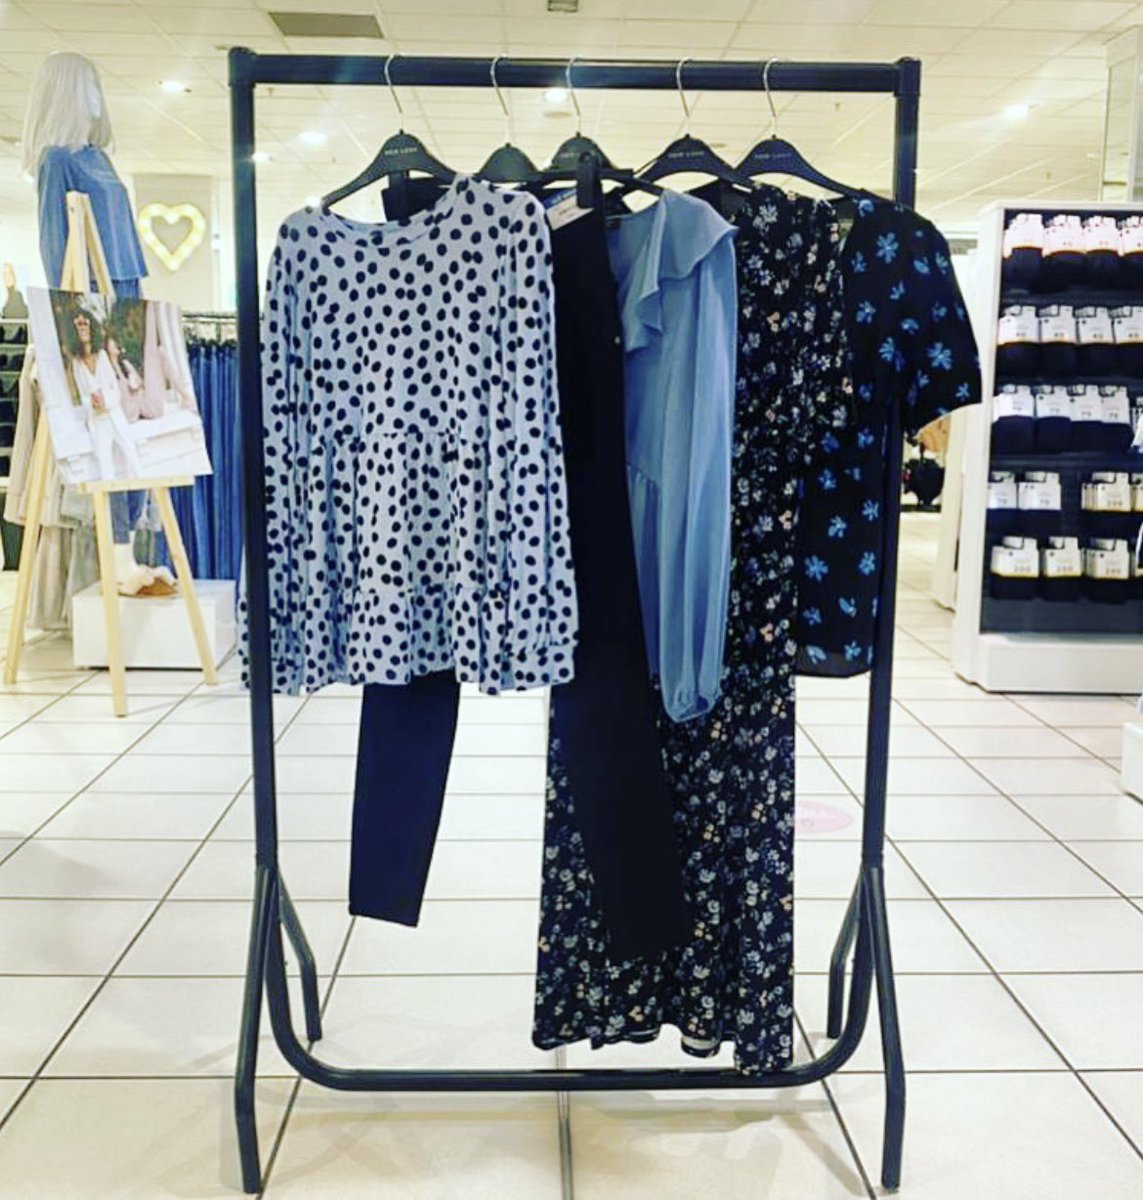 Head over to New Look in the Market Place & check out their exciting new maternity range! Whether you're looking for soft & stretchy loungewear or something floaty & pretty - you'll find plenty of styles to suit your mood. #Maternitywear #Fashion #Style #Loungewear